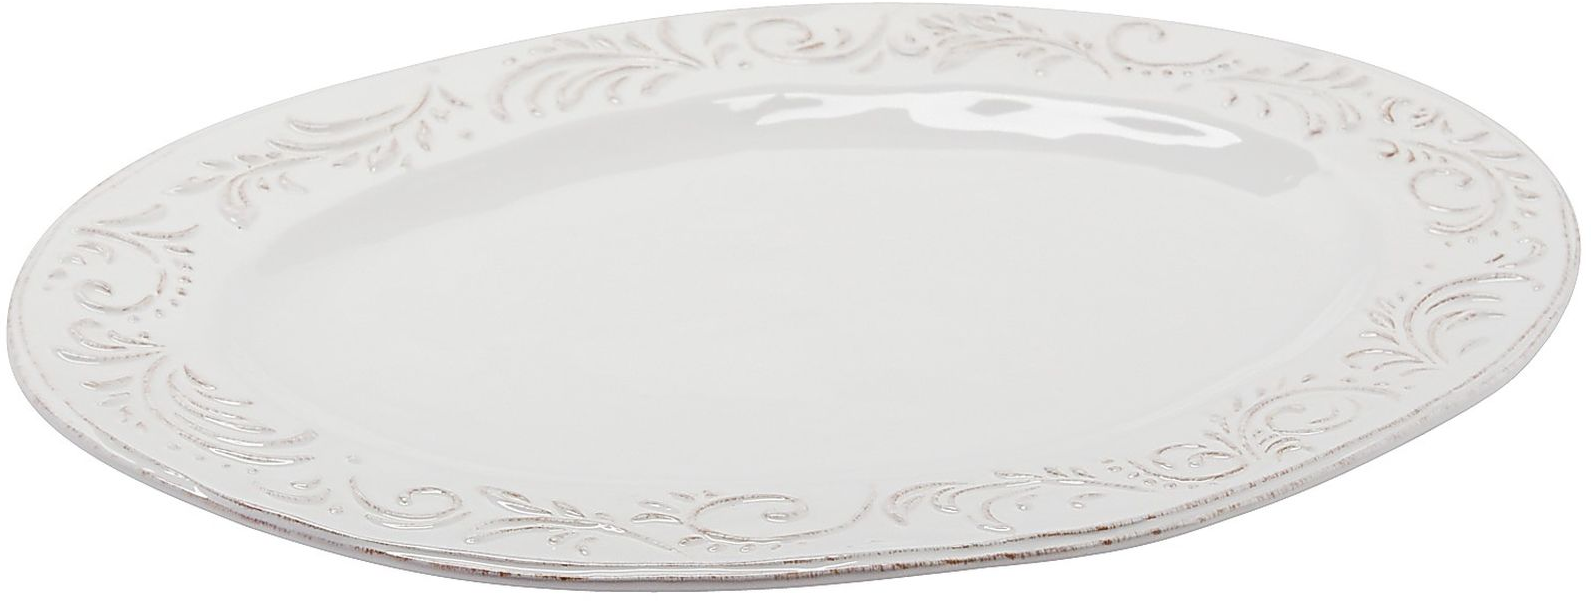 Antique Scroll Serving Platter | Pier 1 Imports